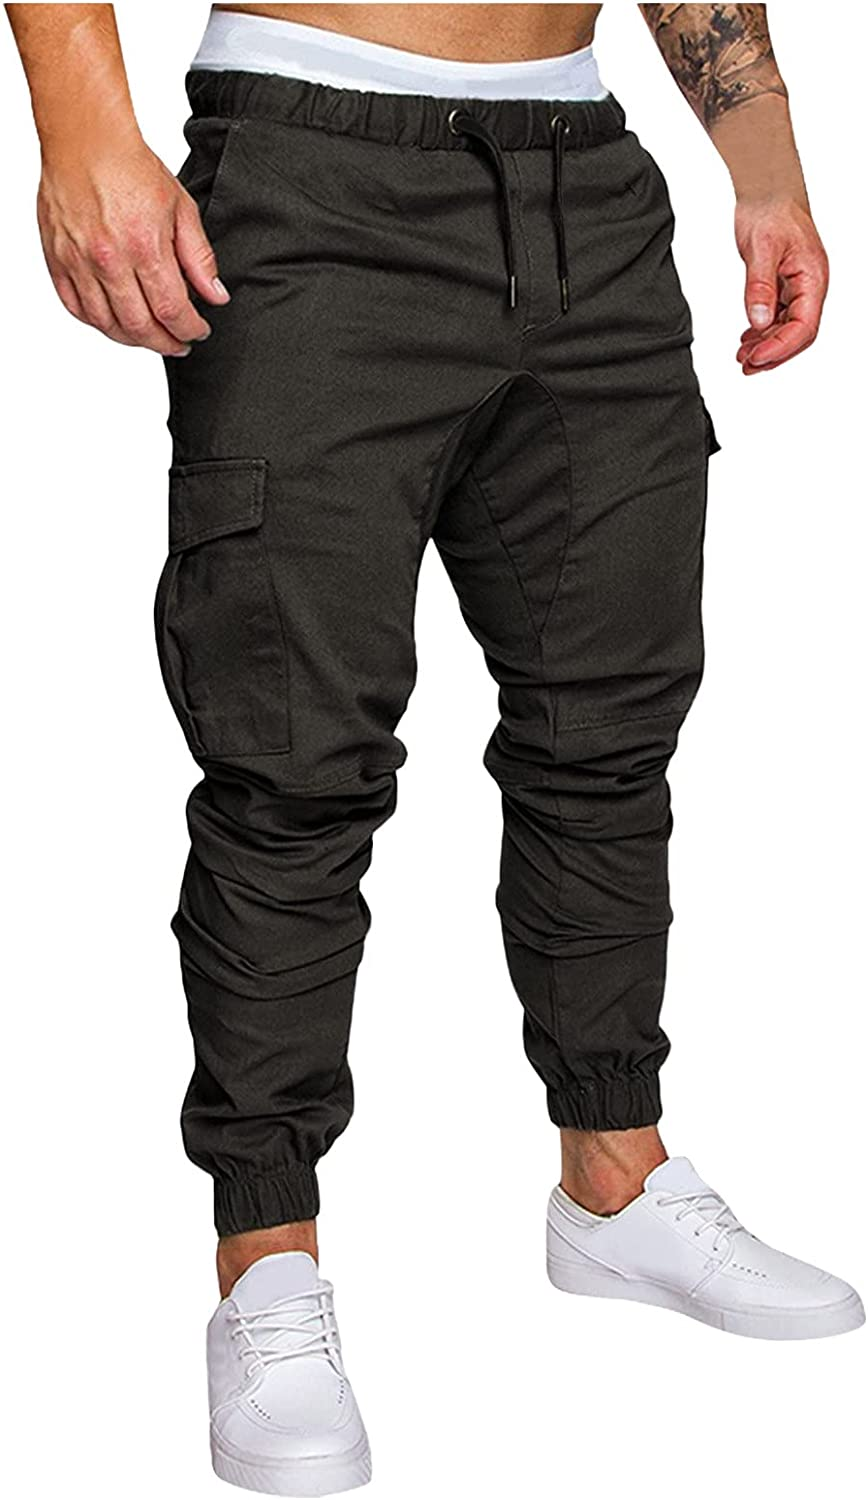 MOOKO Mens Joggers Athletic Pants Slim Fit Stretch Cargo Pants Sports Outdoors Running Hiking Sweatpants Trousers